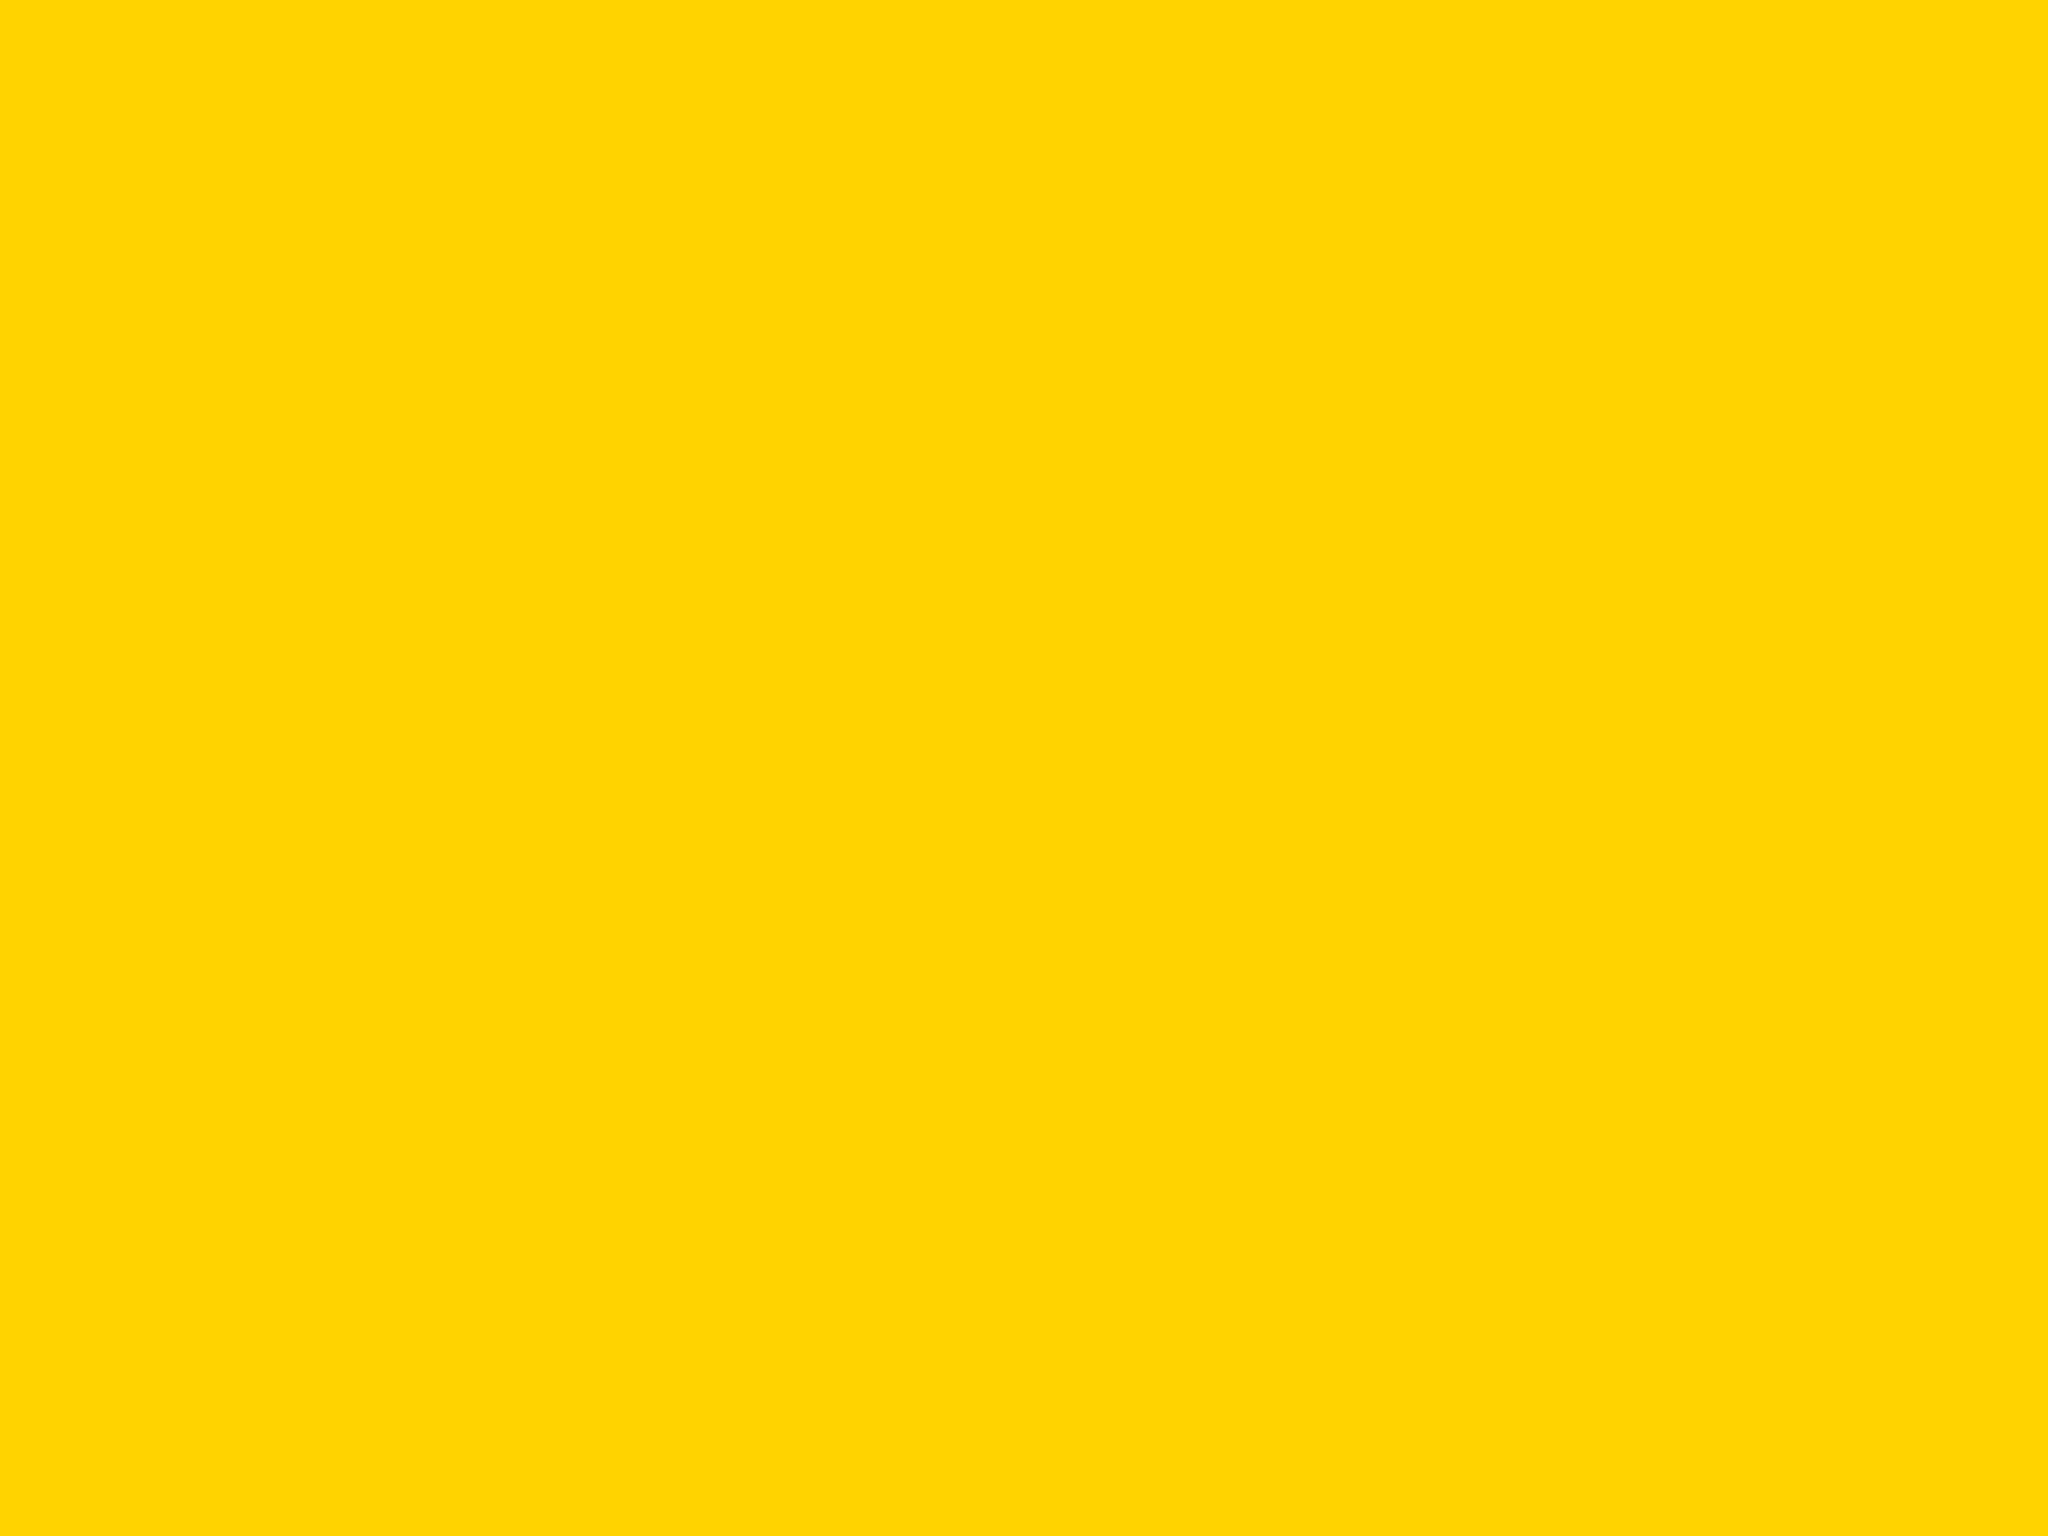 2048x1536 Cyber Yellow Solid Color Background